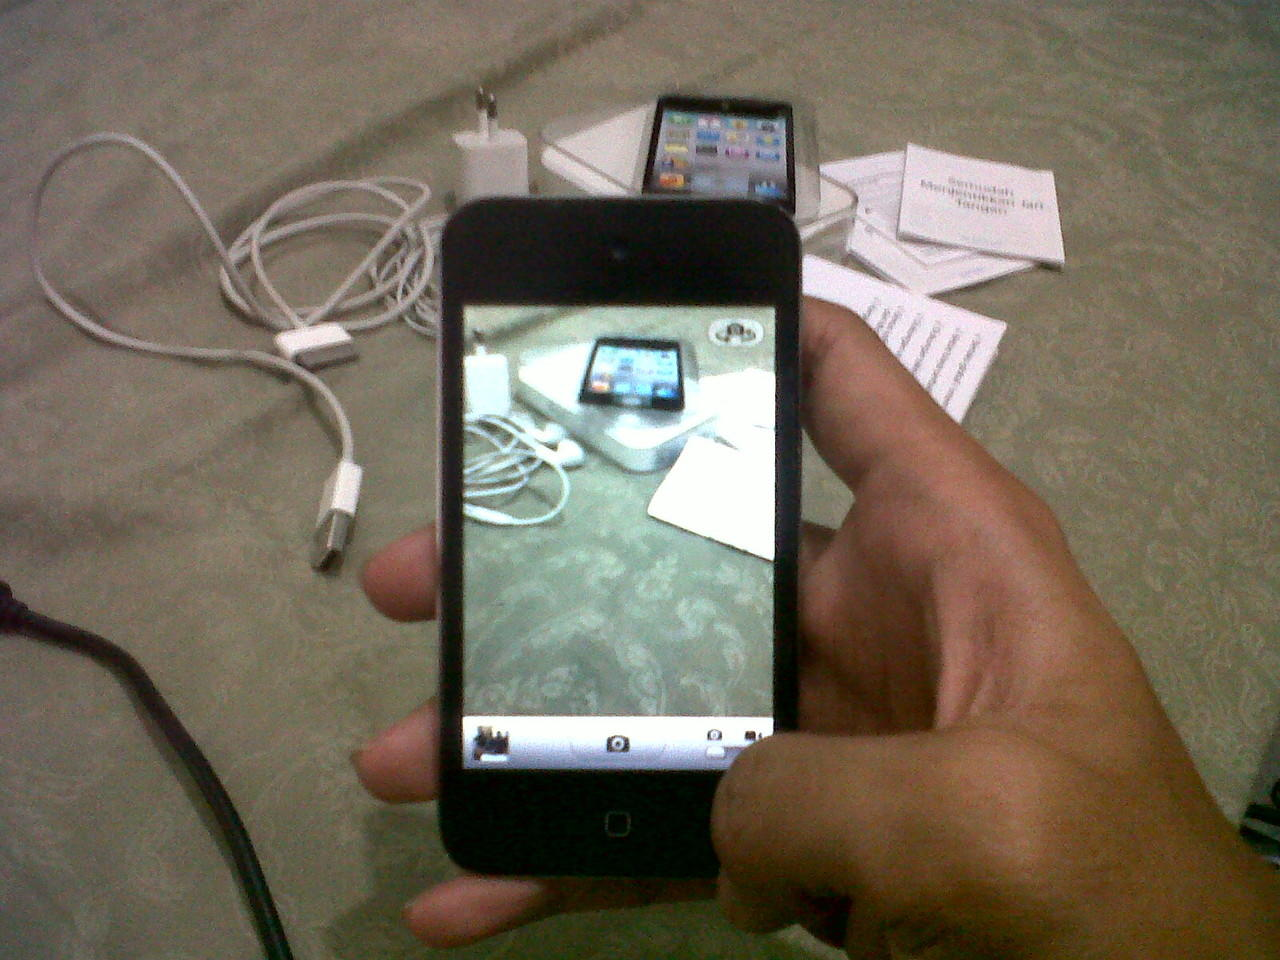 apple ipod touch gen 4 8gb murmer fullset surabaya